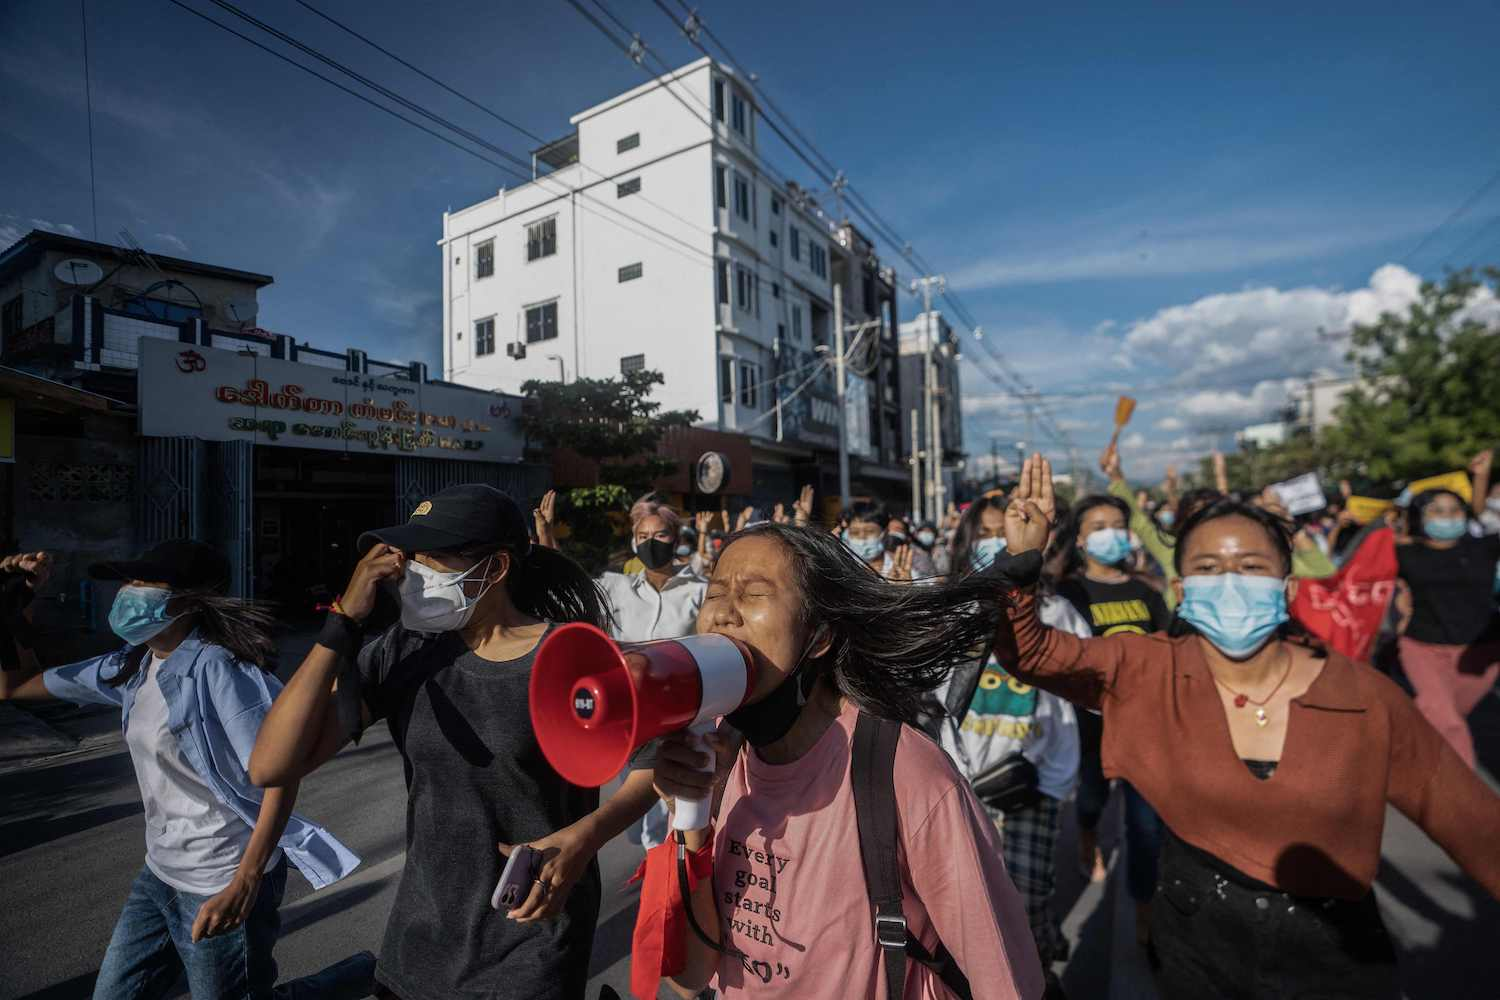 Protesters shout slogans and make the three-finger salute as they take part in a demonstration against the military in Mandalay on Saturday. (Stringer via AFP)